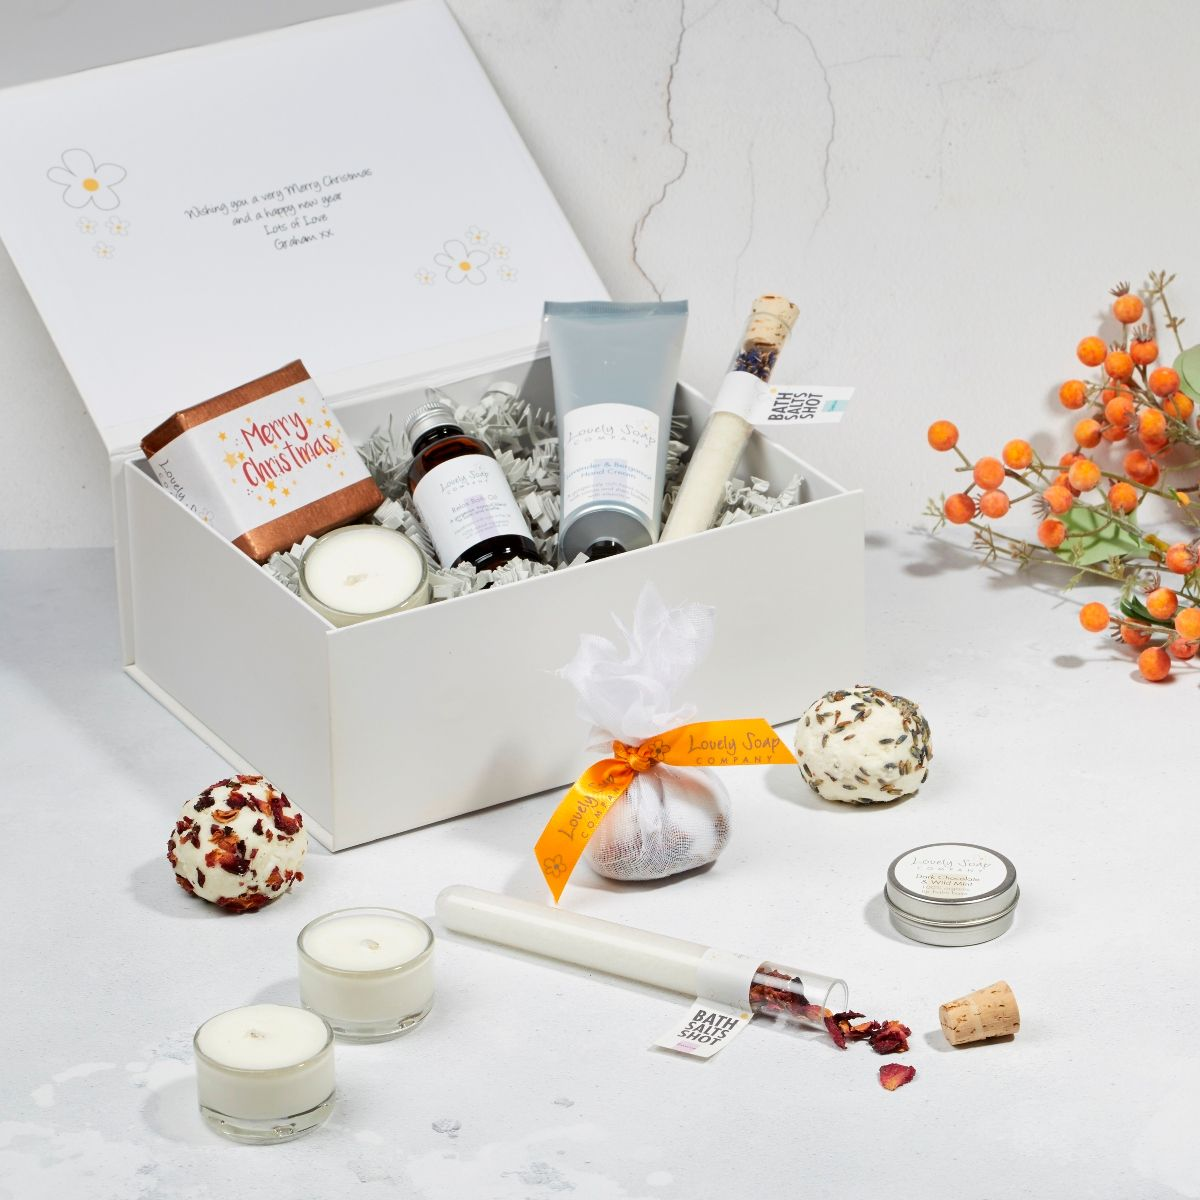 12 days of Xmas pamper hamper